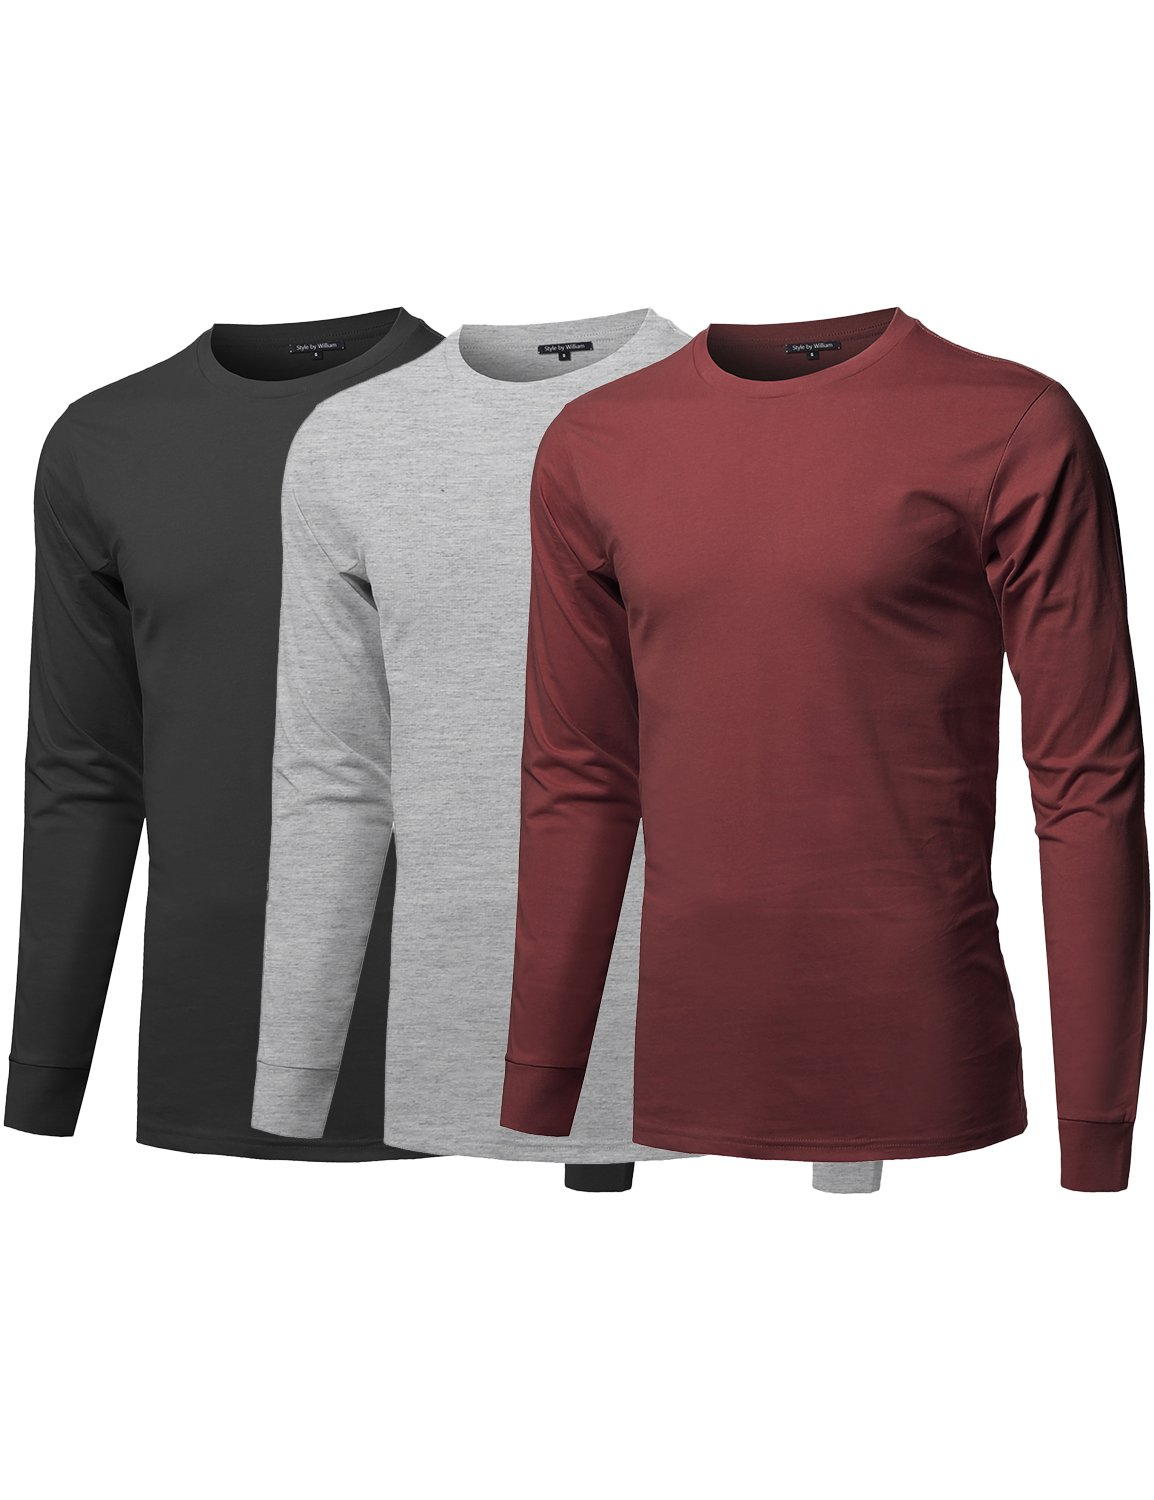 Style by William Causal Solid Basic 100% Ring Spun Cotton Long Sleeve T-Shirt Blk/Hgrey/BGNDY S